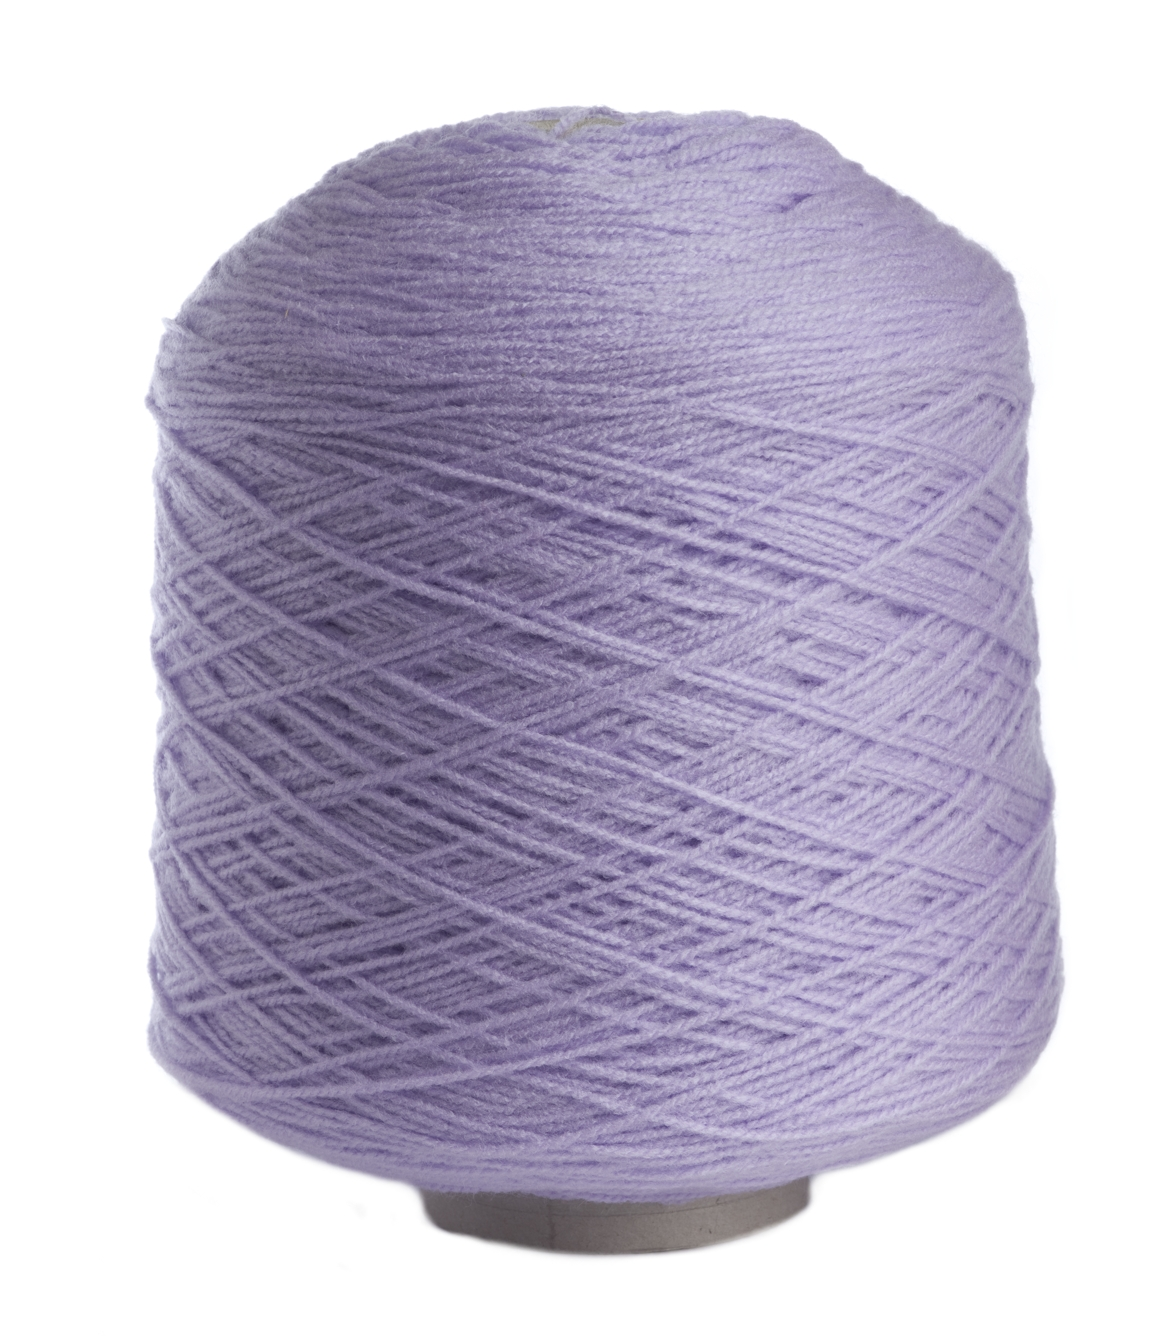 Acrylic Yarn : ... Cone 4Ply Knitting Yarn 100% Acrylic Craft Wool Hand or Machine eBay